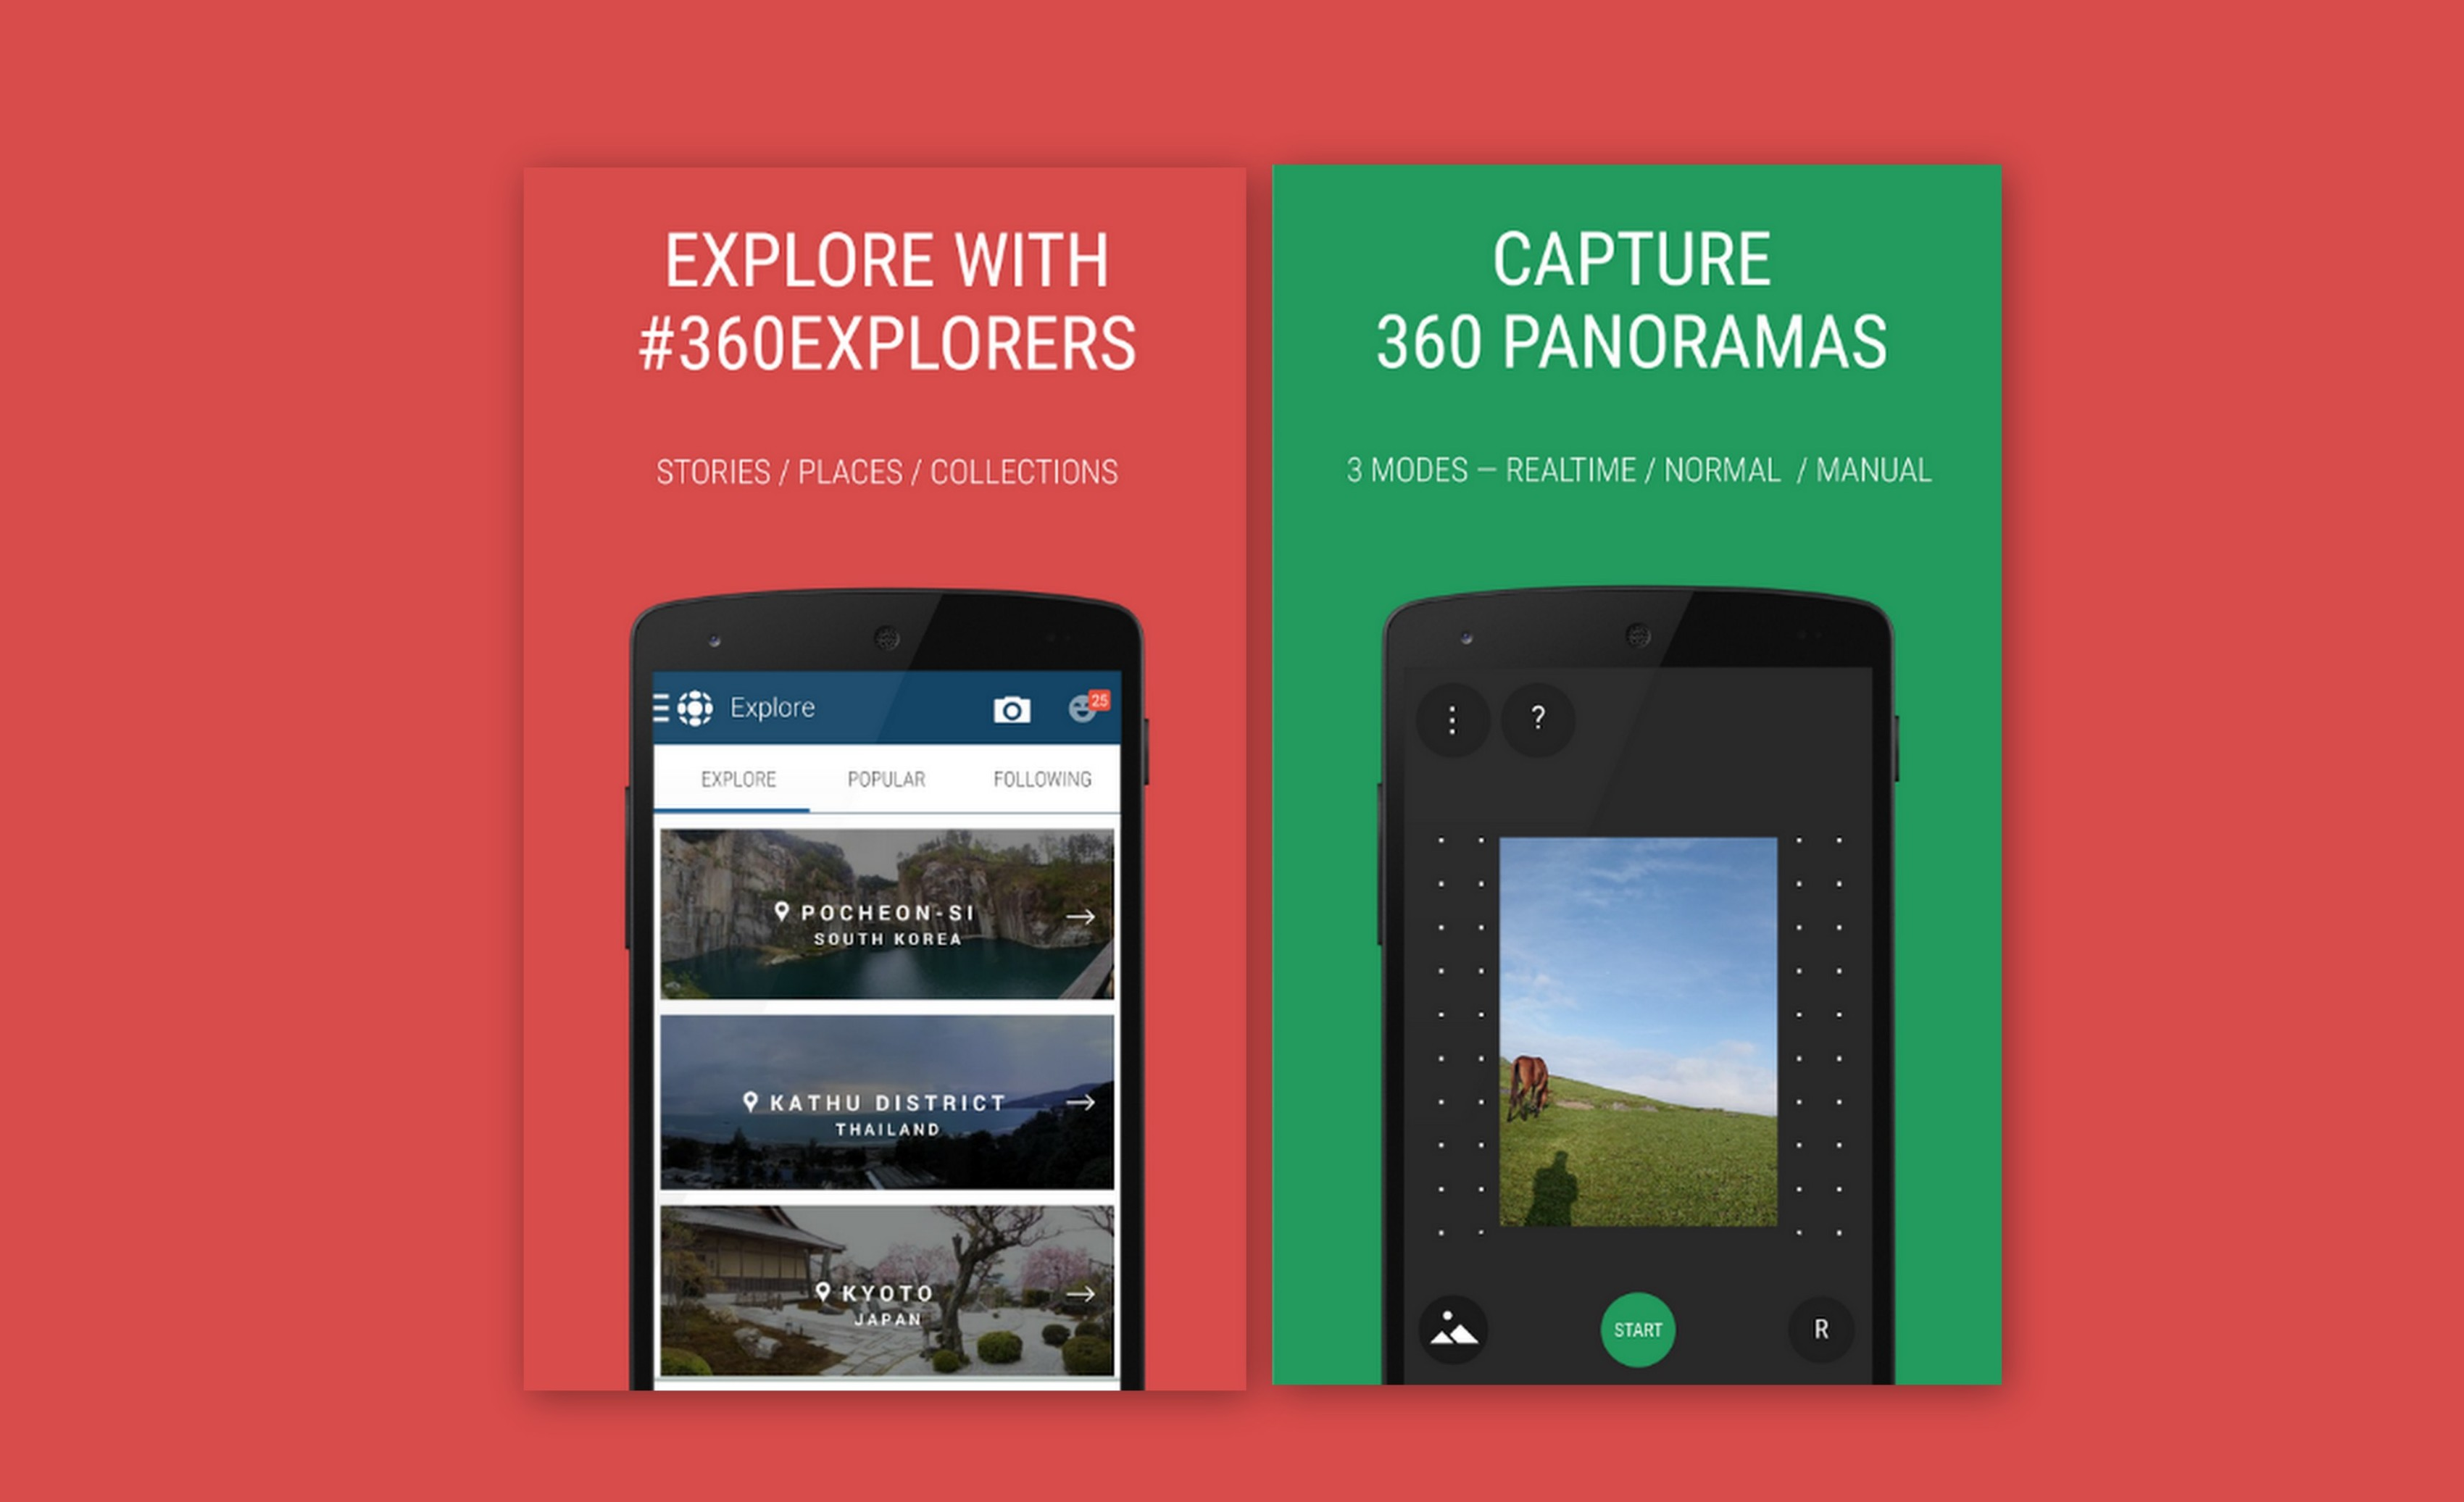 ac526fa5cc40 7 Best VR apps for Android phones to Use in Google Cardboard